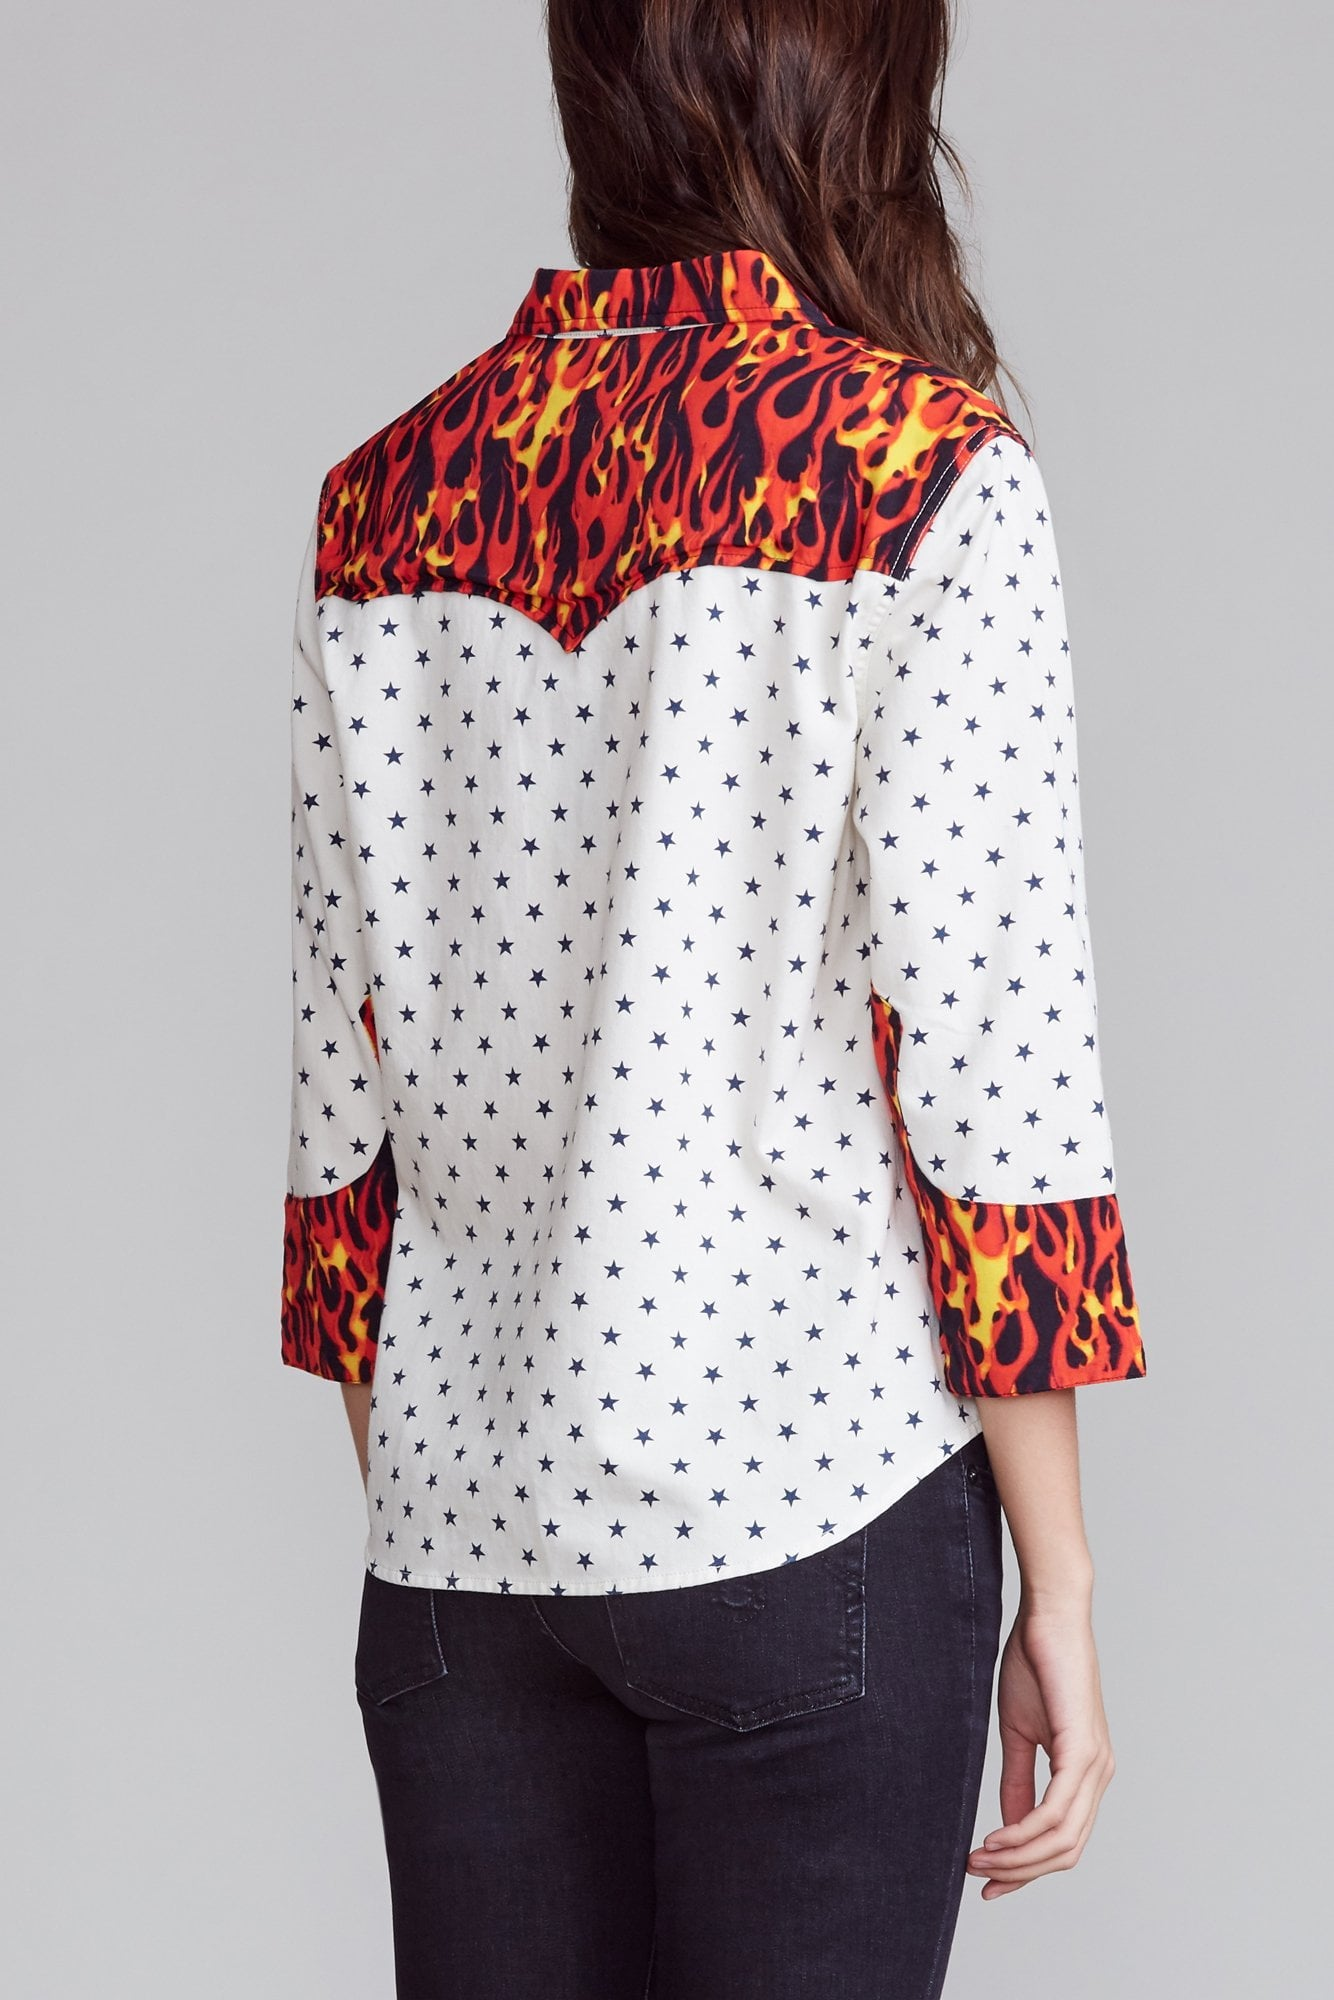 Exaggerated Collar Cowboy Shirt - White and Blue Star with Flames